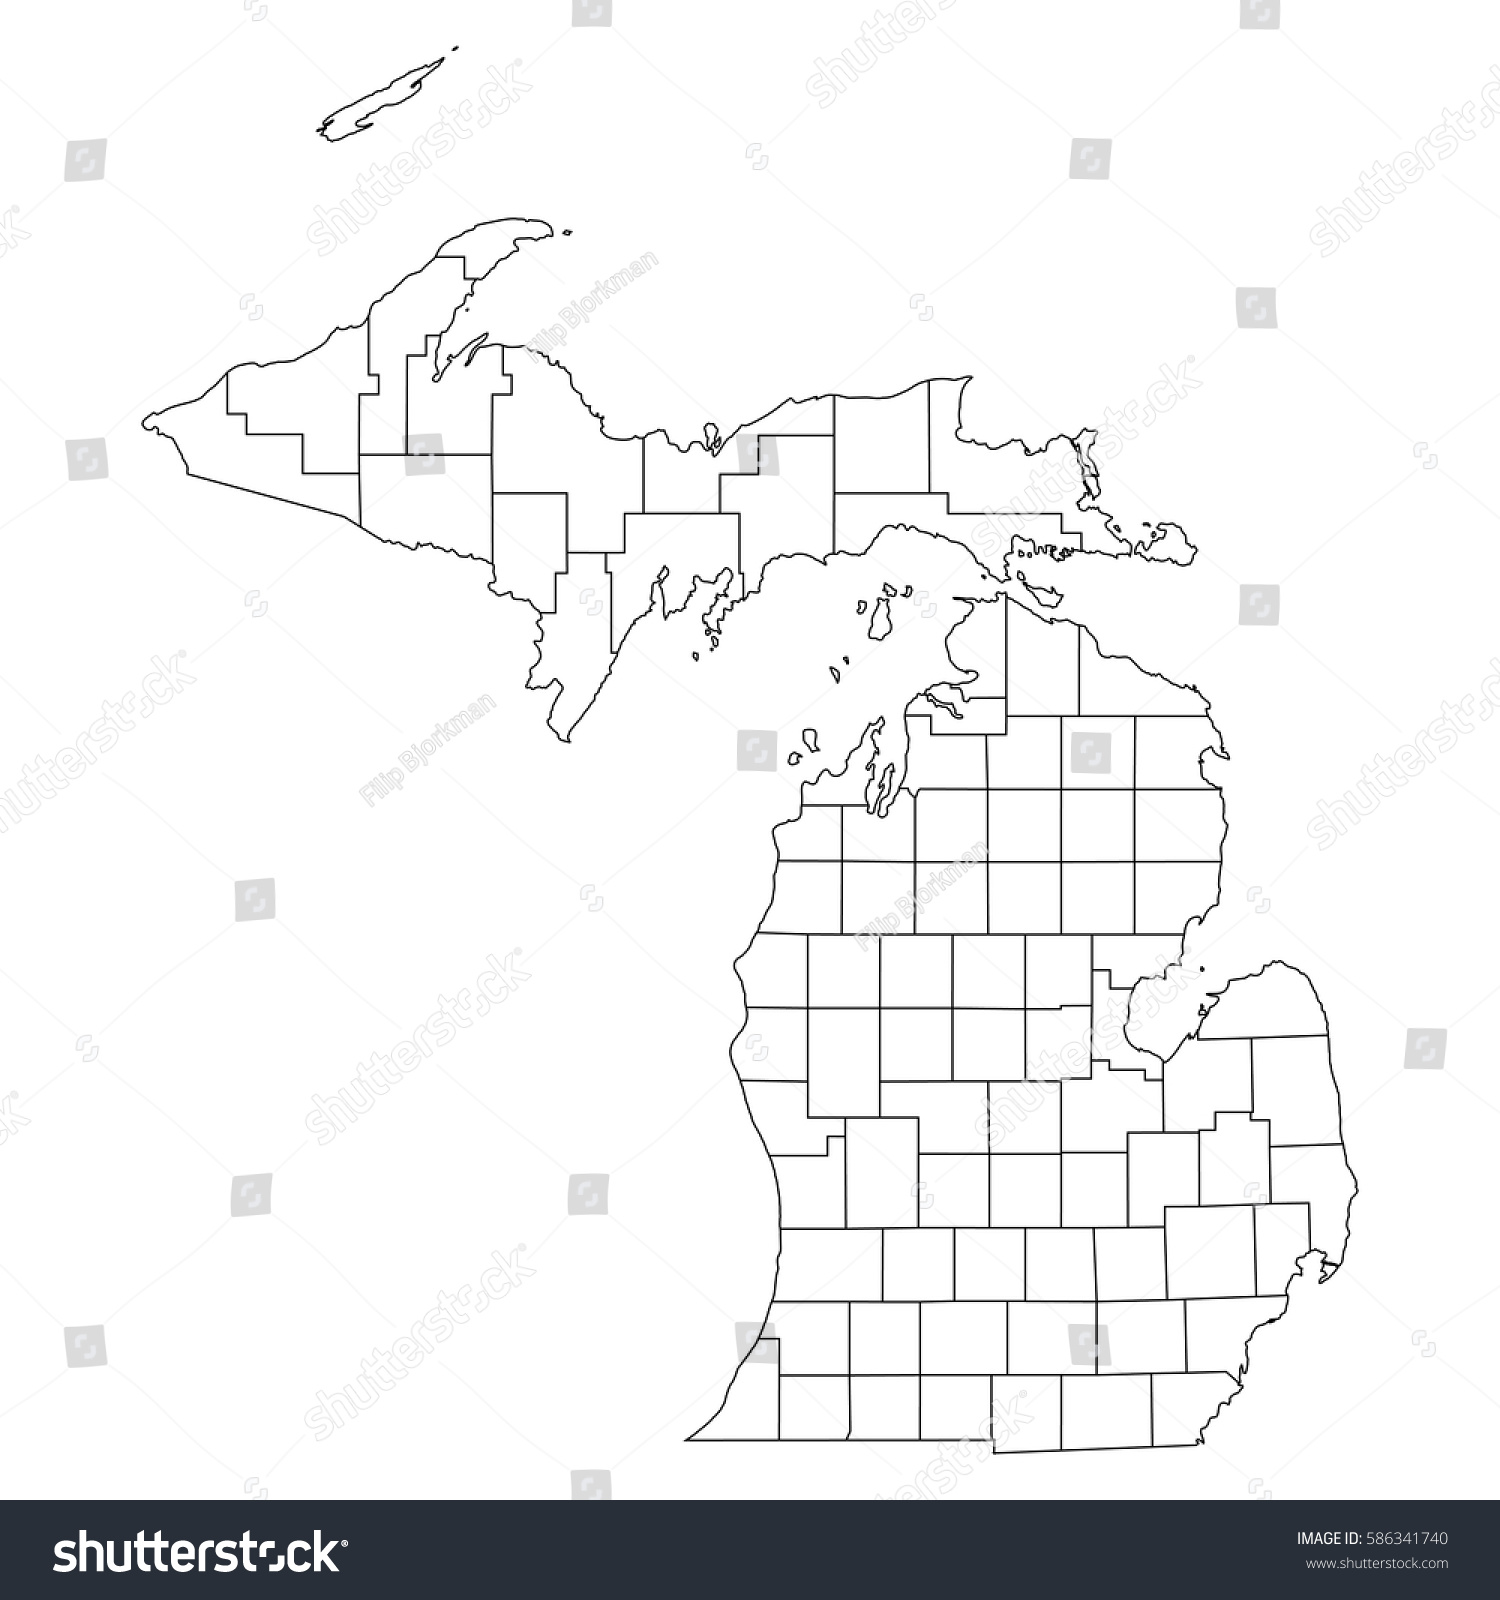 Detailed Map Of Michigan Black Ops Map Packs - Michigan map with counties